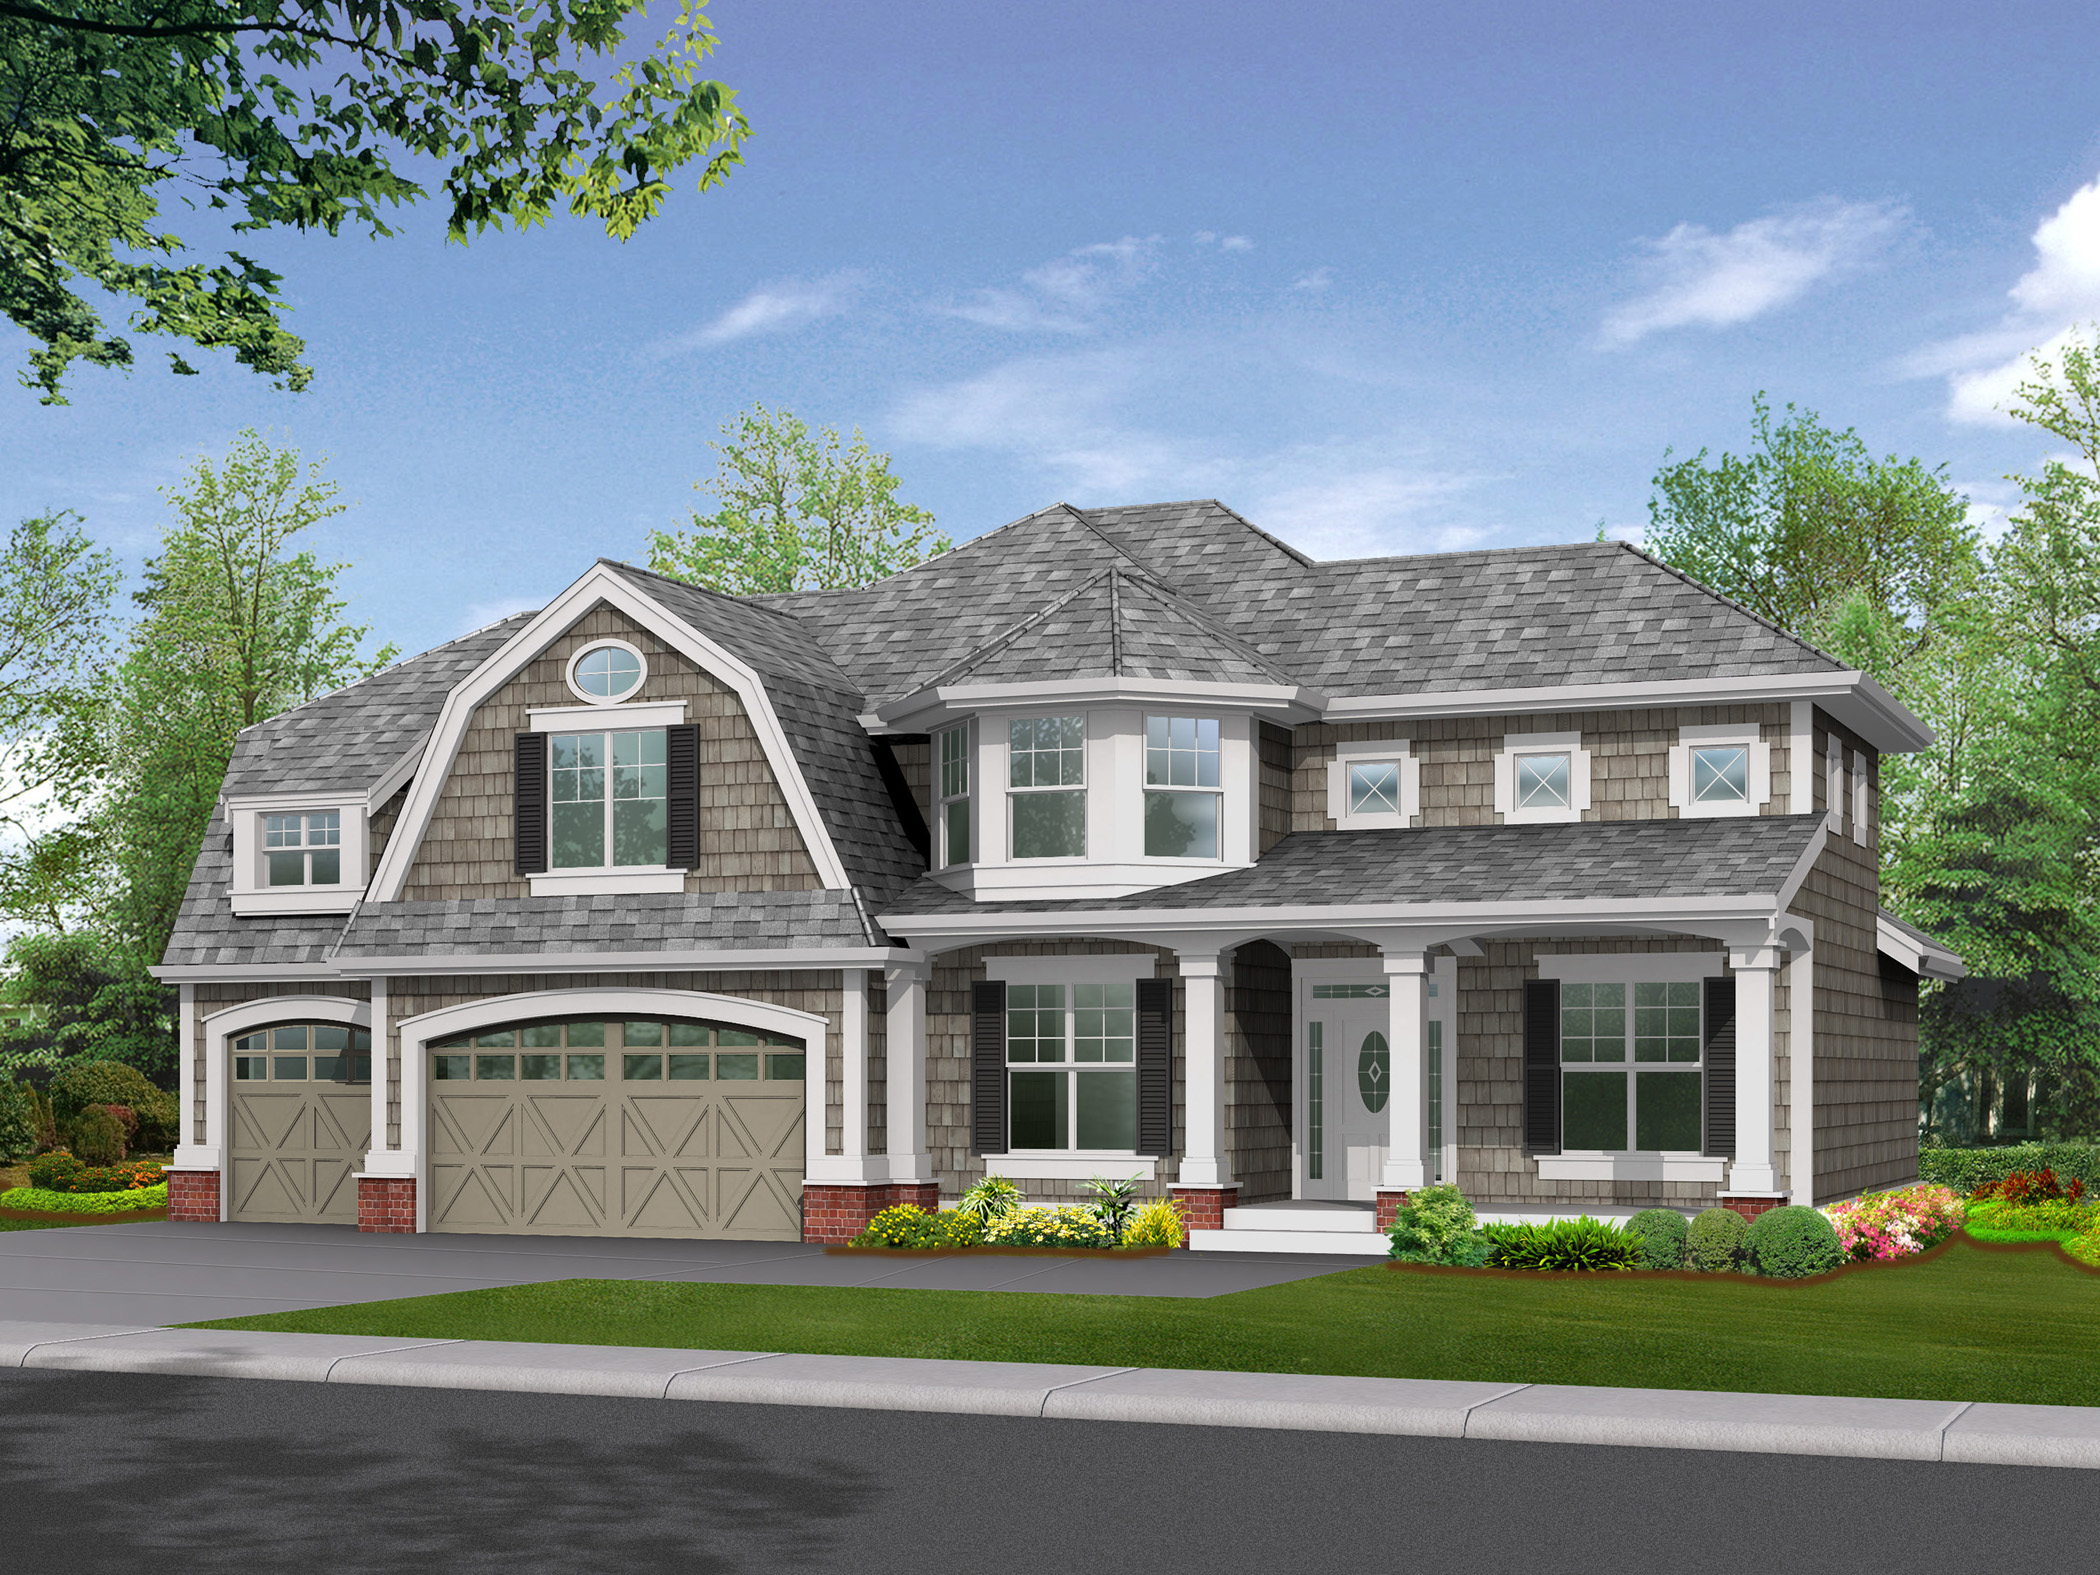 Stately Shingle Style Home Plan With Options